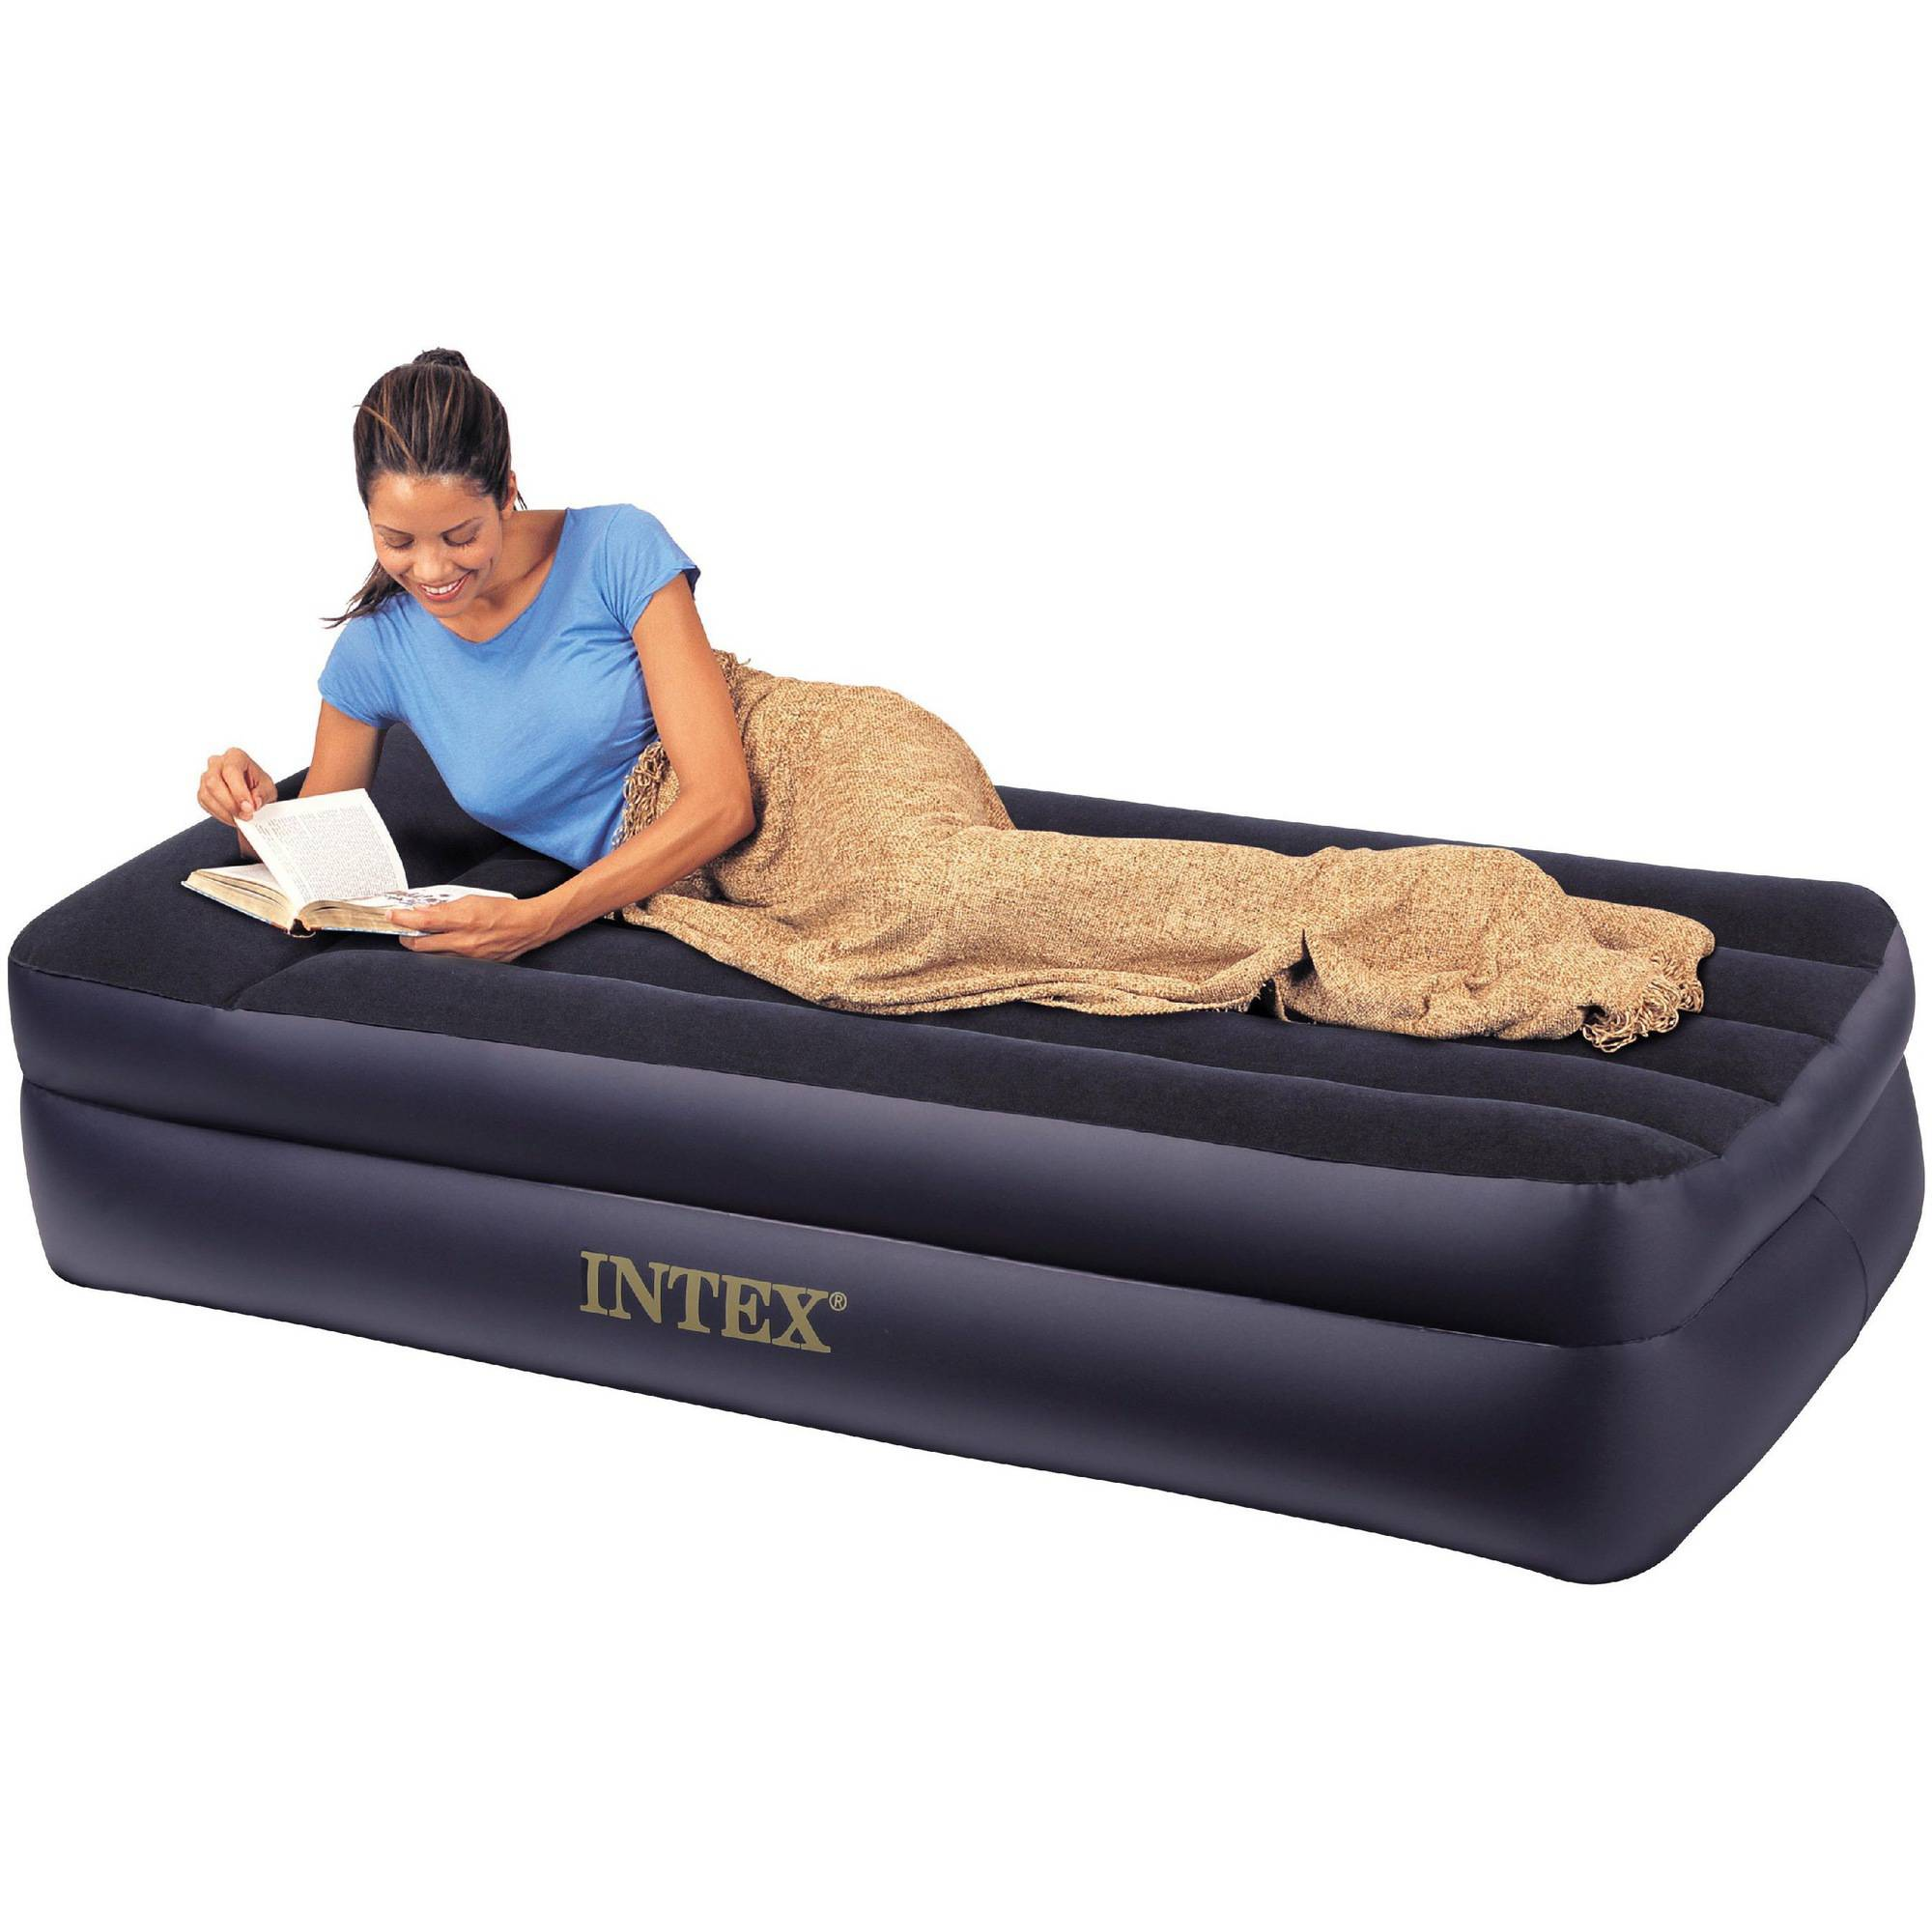 "Intex Twin 16.5"" Raised Pillow Rest Airbed Mattress with Built-in Pump"